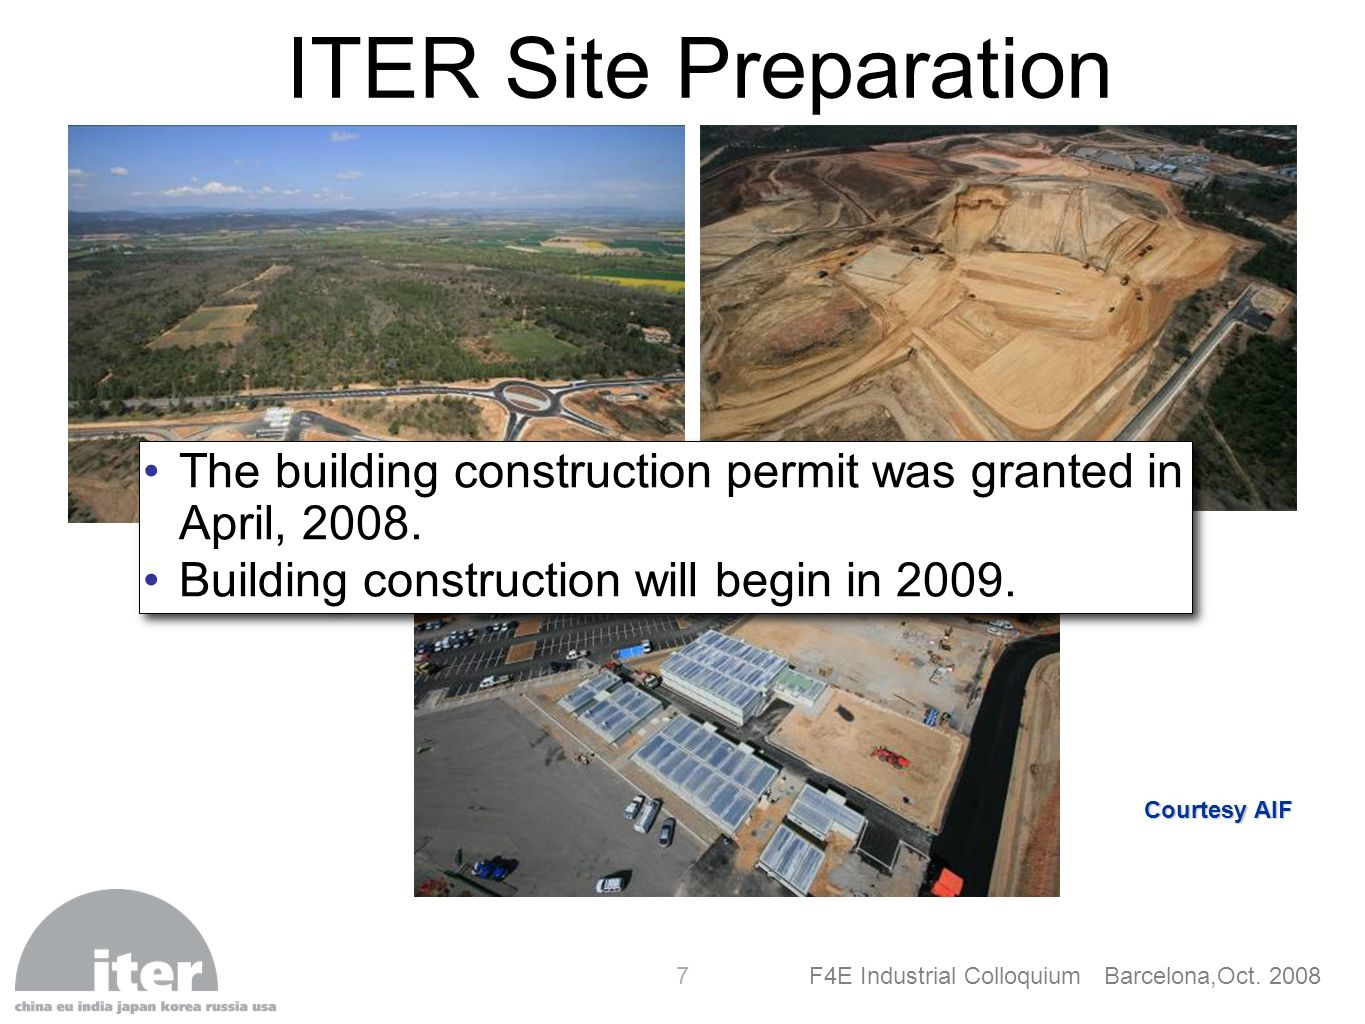 ITER Site Preparation Courtesy AIF. The building construction permit was granted in April, 2008.